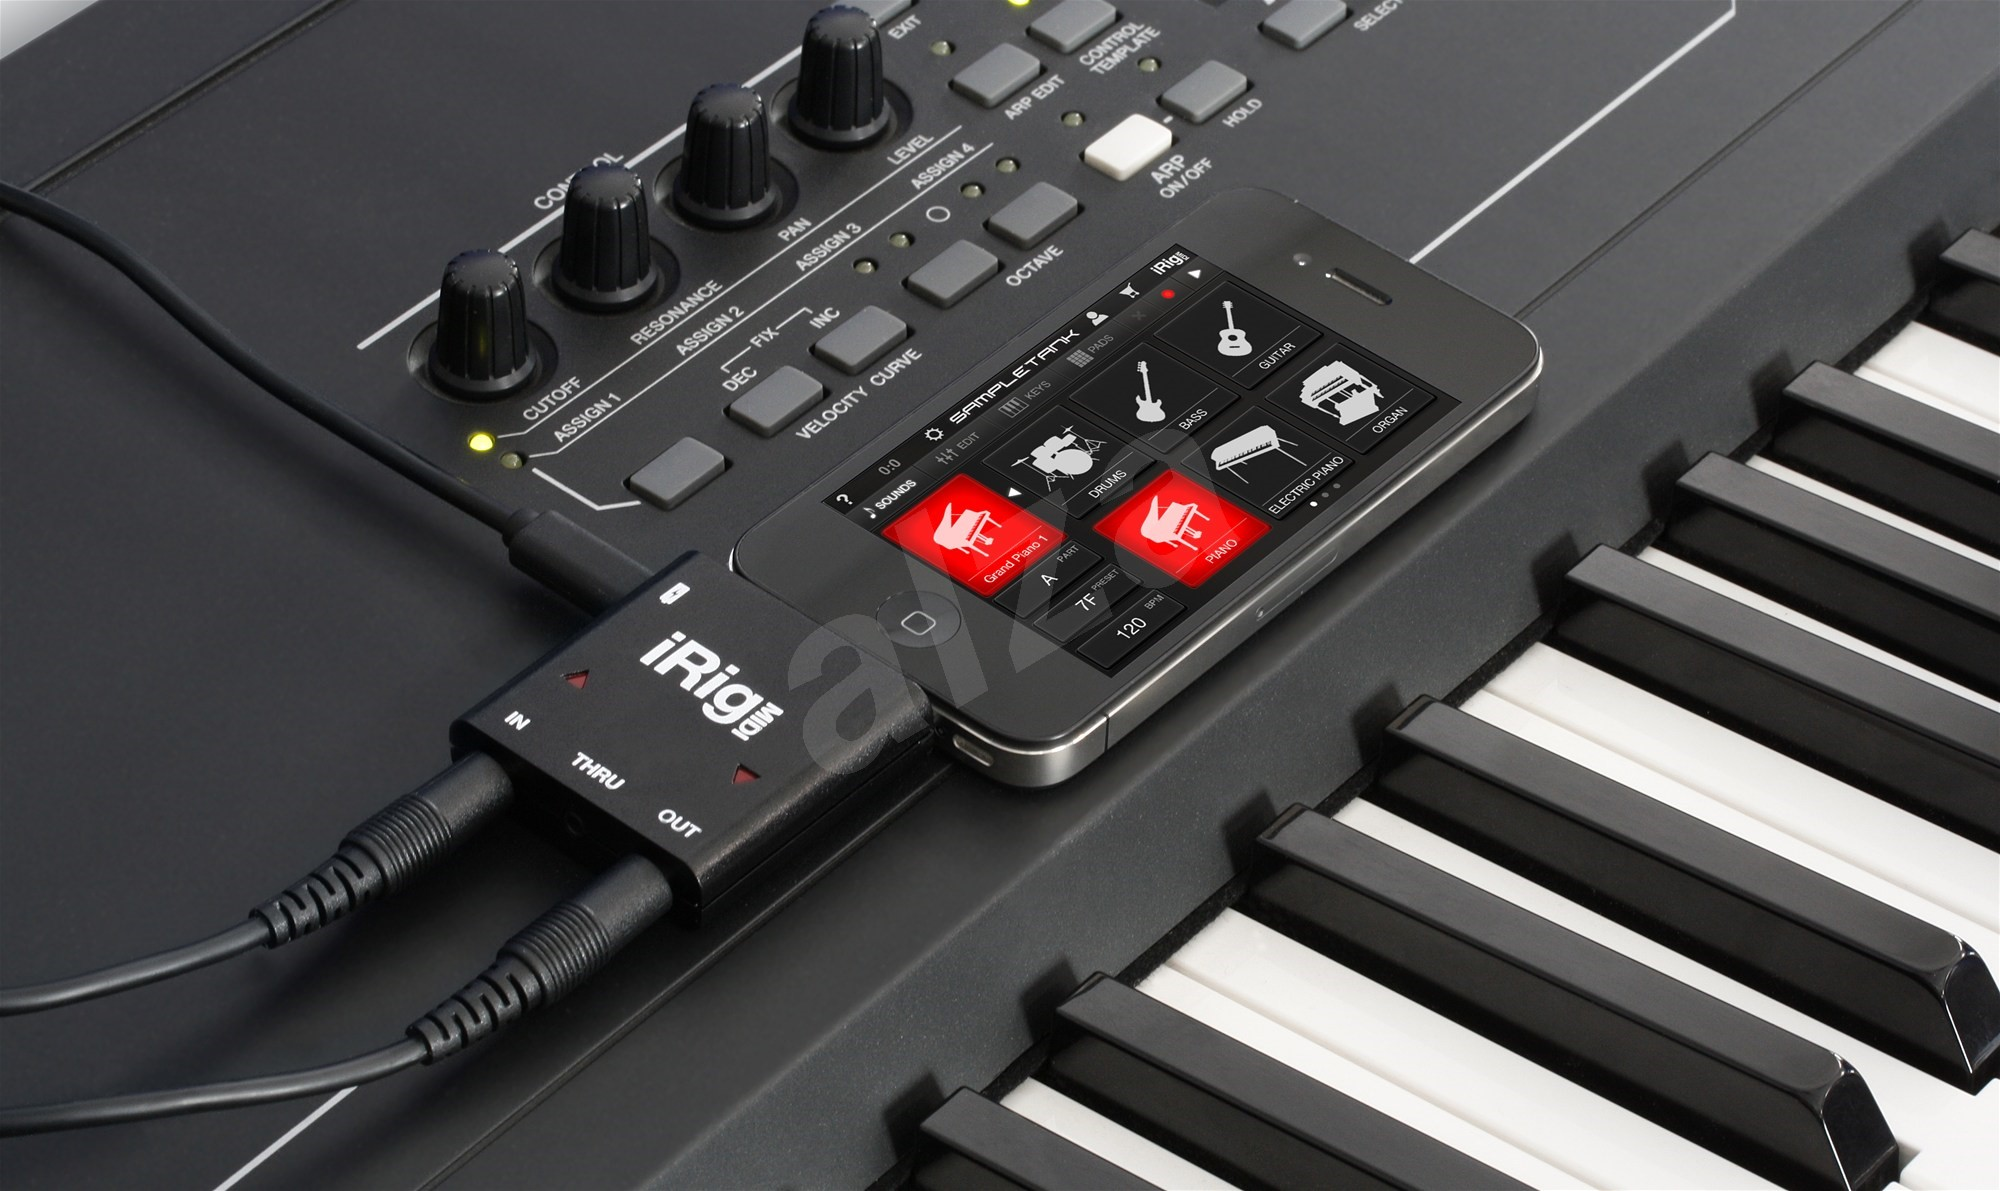 how to connect irig to pc